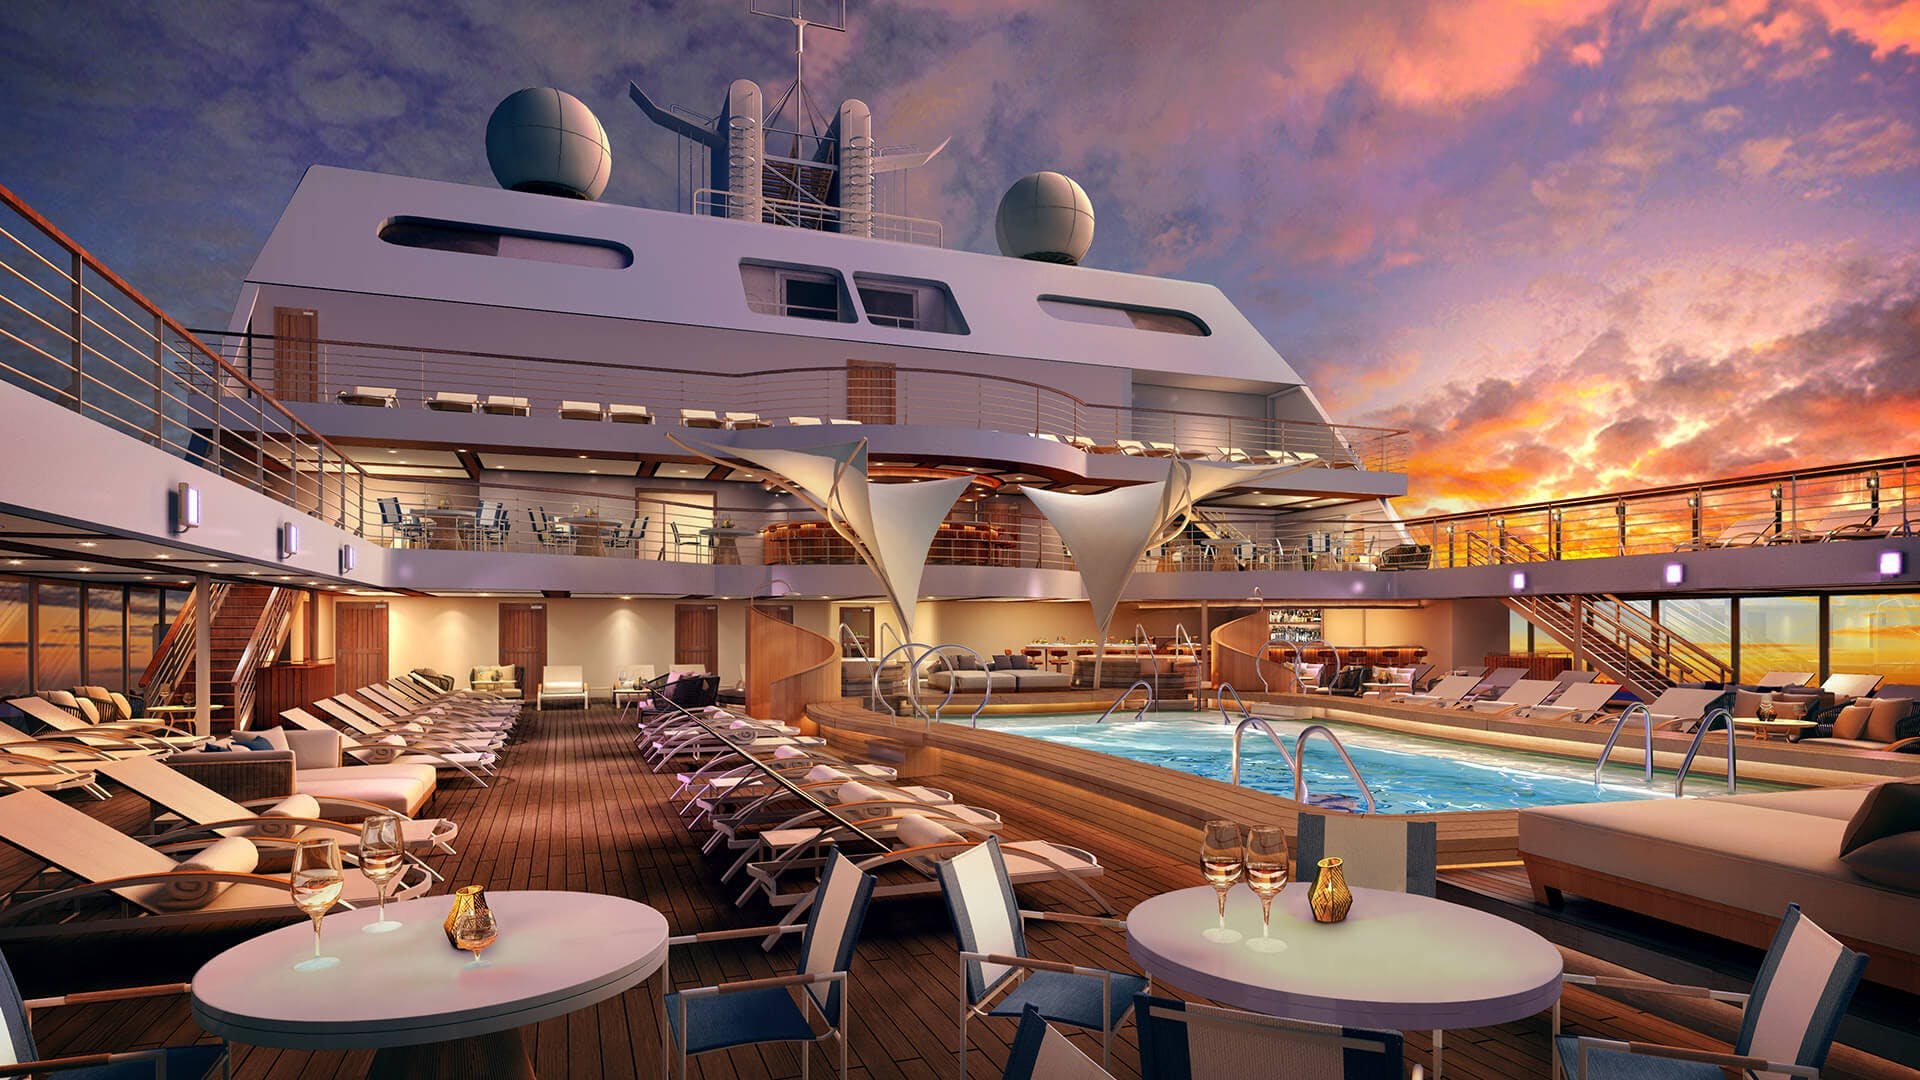 The deck of the Seabourn Ovation.